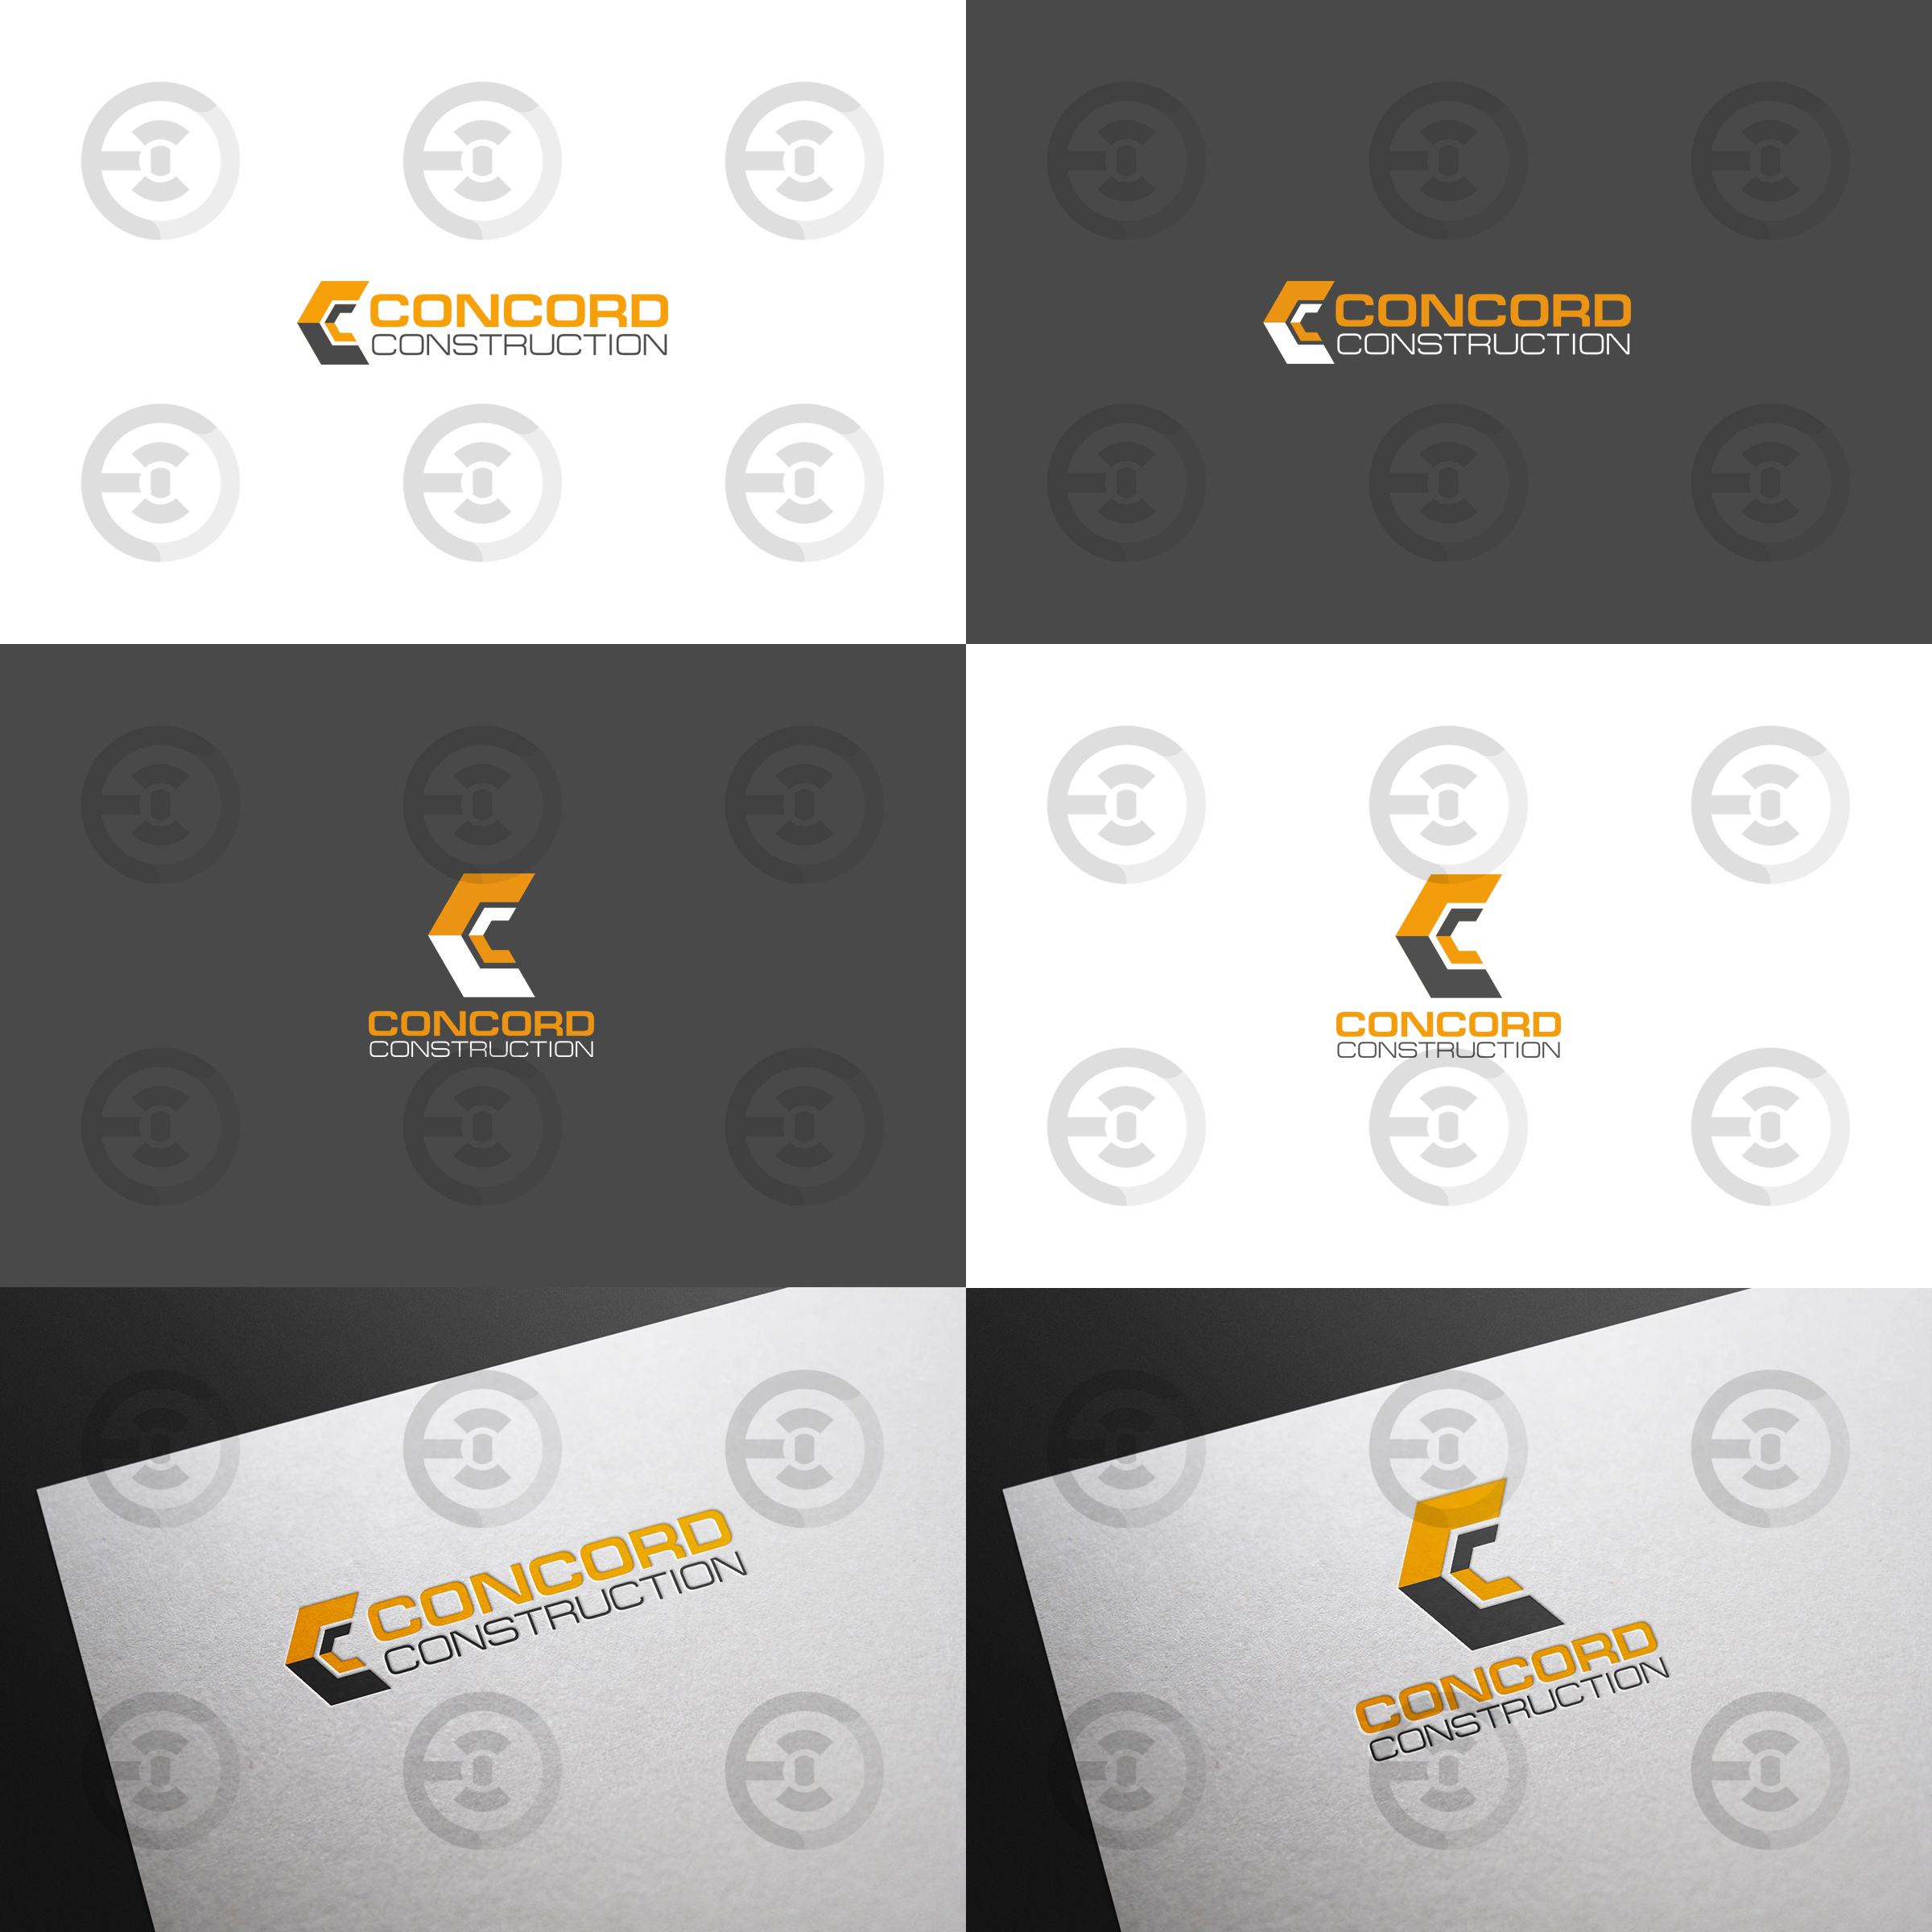 Concord_Construction_logo_preview_3.jpg